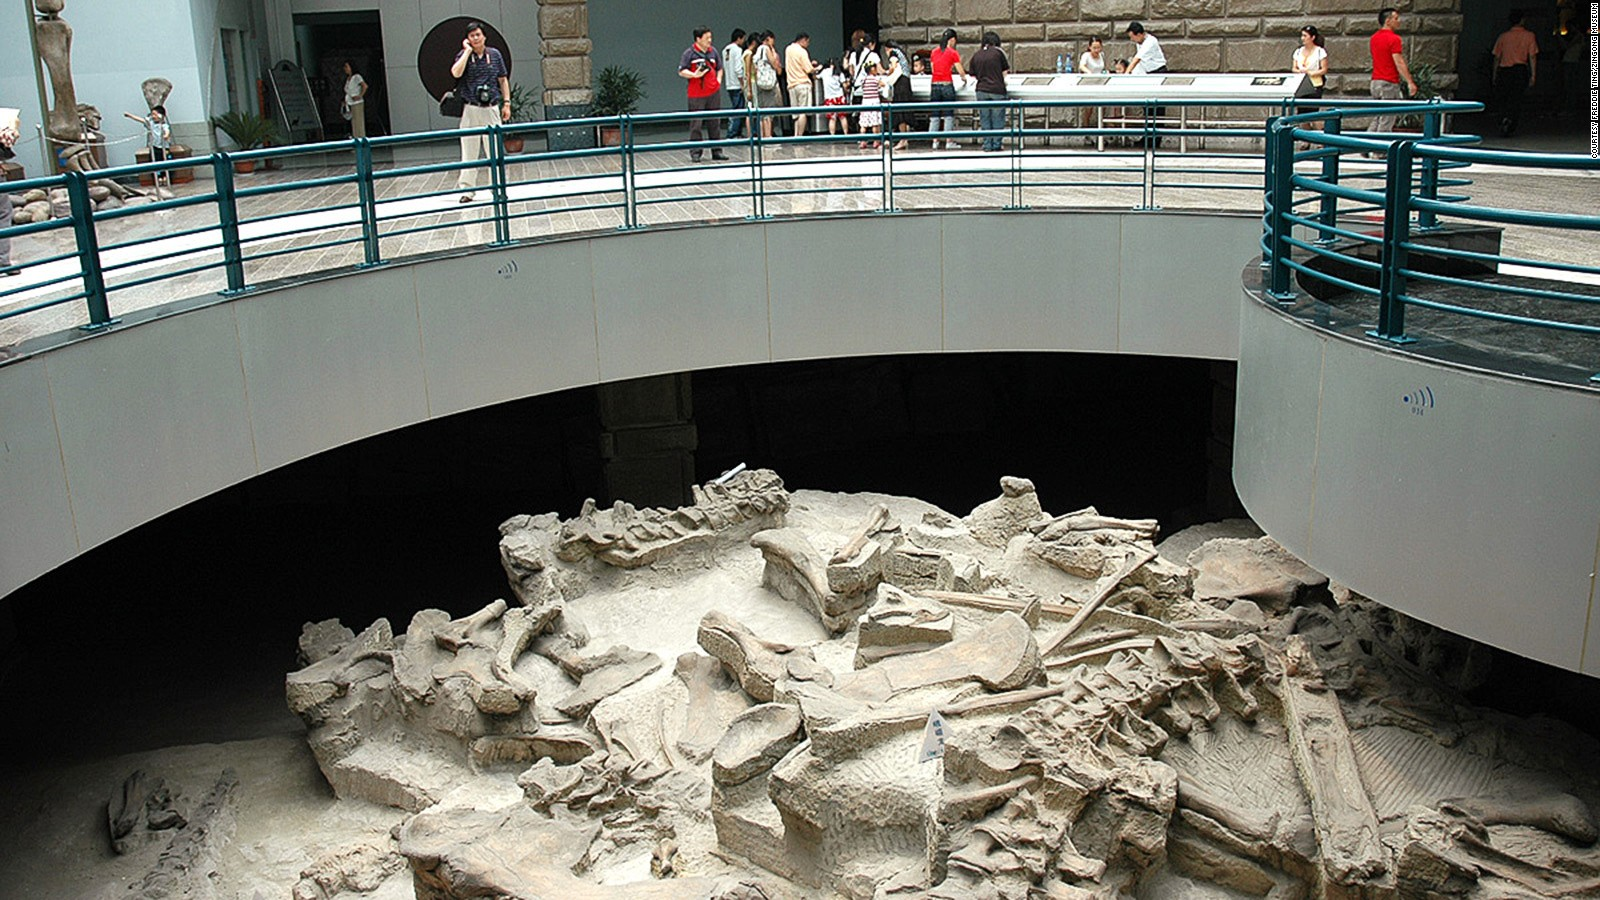 Of The Worlds Best Dinosaur Museums CNN Travel - Museums on us list